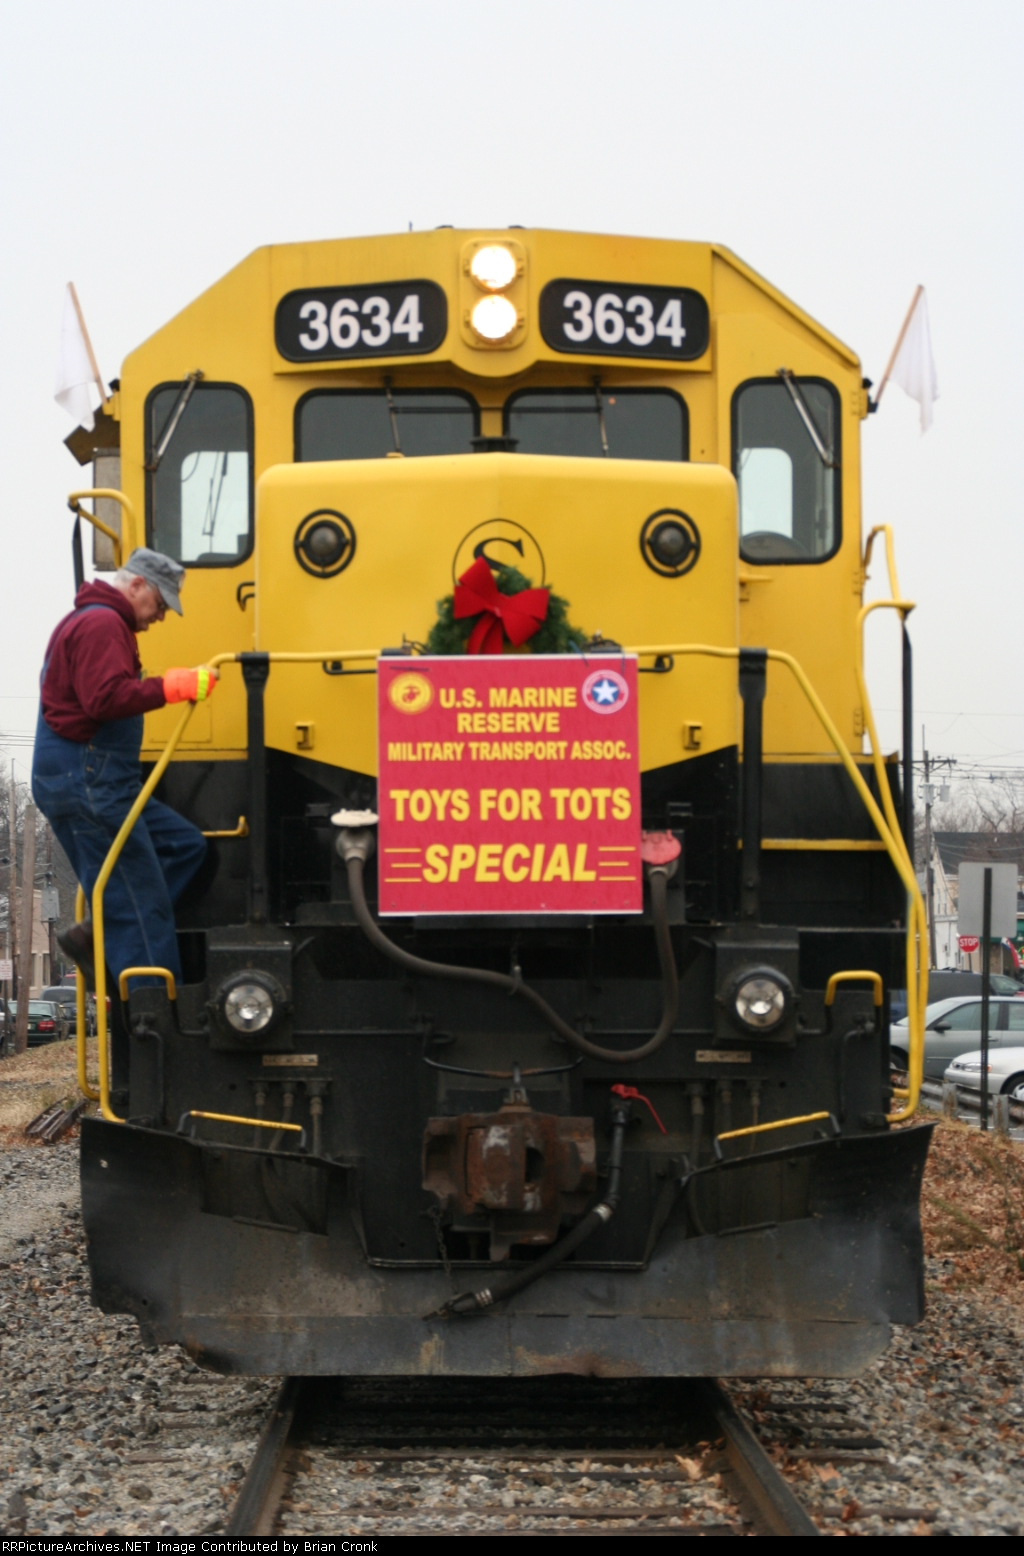 The engineer getting ready for a west bound departure to pick up toys along the Susquehanna's Southern Division